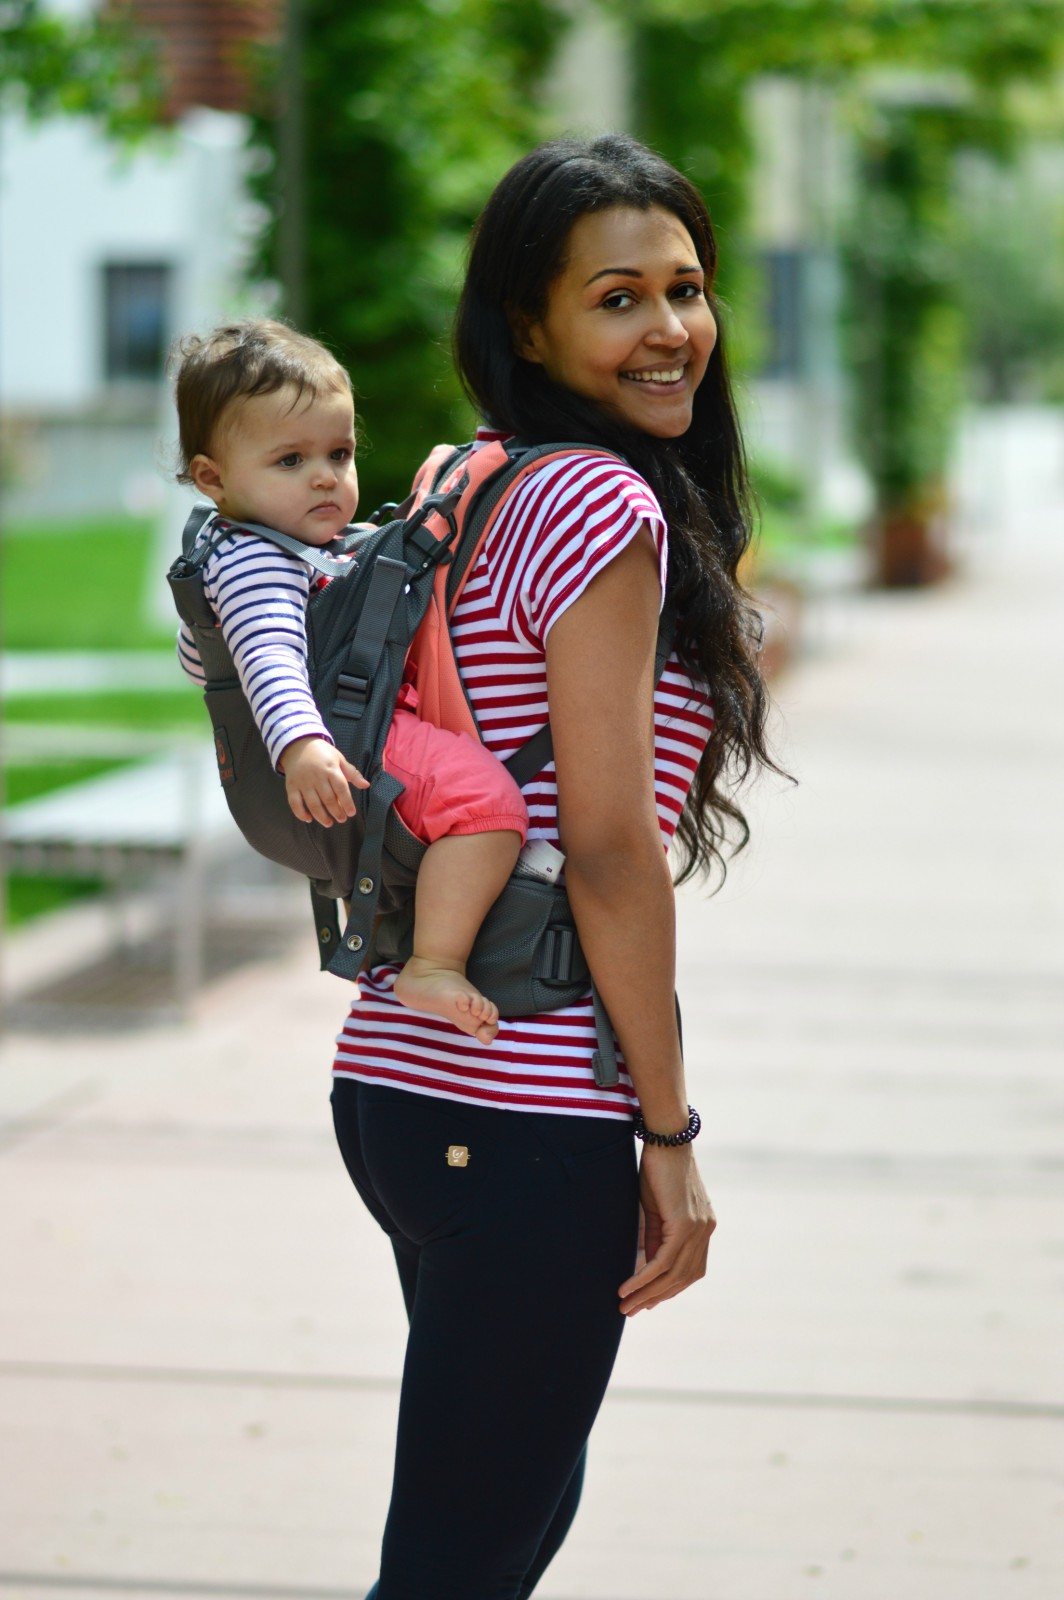 Stokke Baby Carrier/ currently wearing/ blog mode suisse/blog suisse